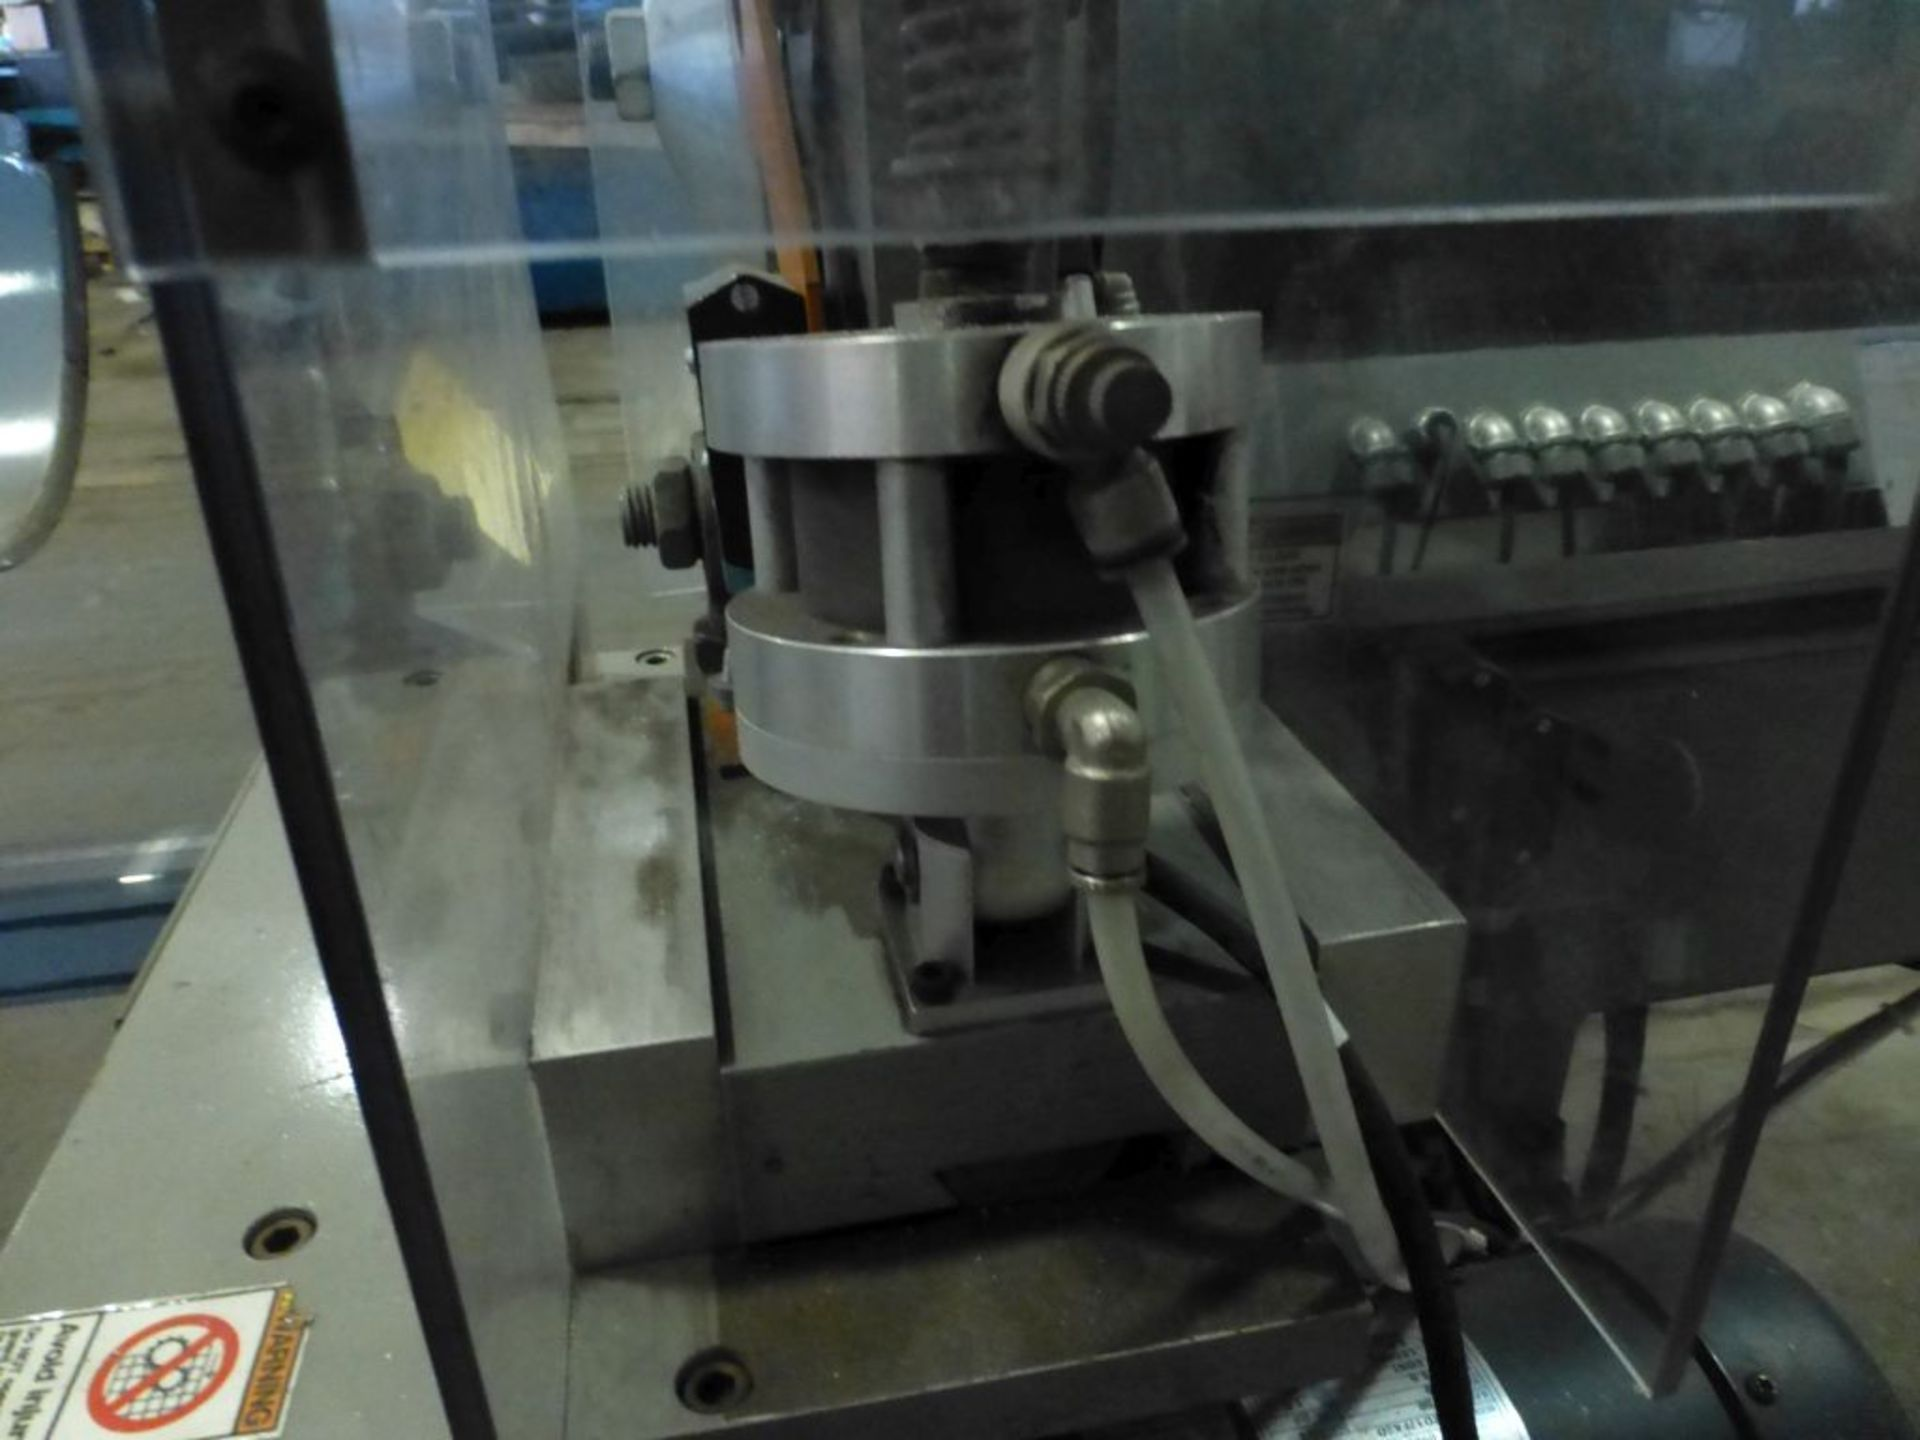 Appleton Automatic Core Cutter | Model No. A301; 2 HP; 460V; 3PH; Mfg: 2010 - Image 9 of 19